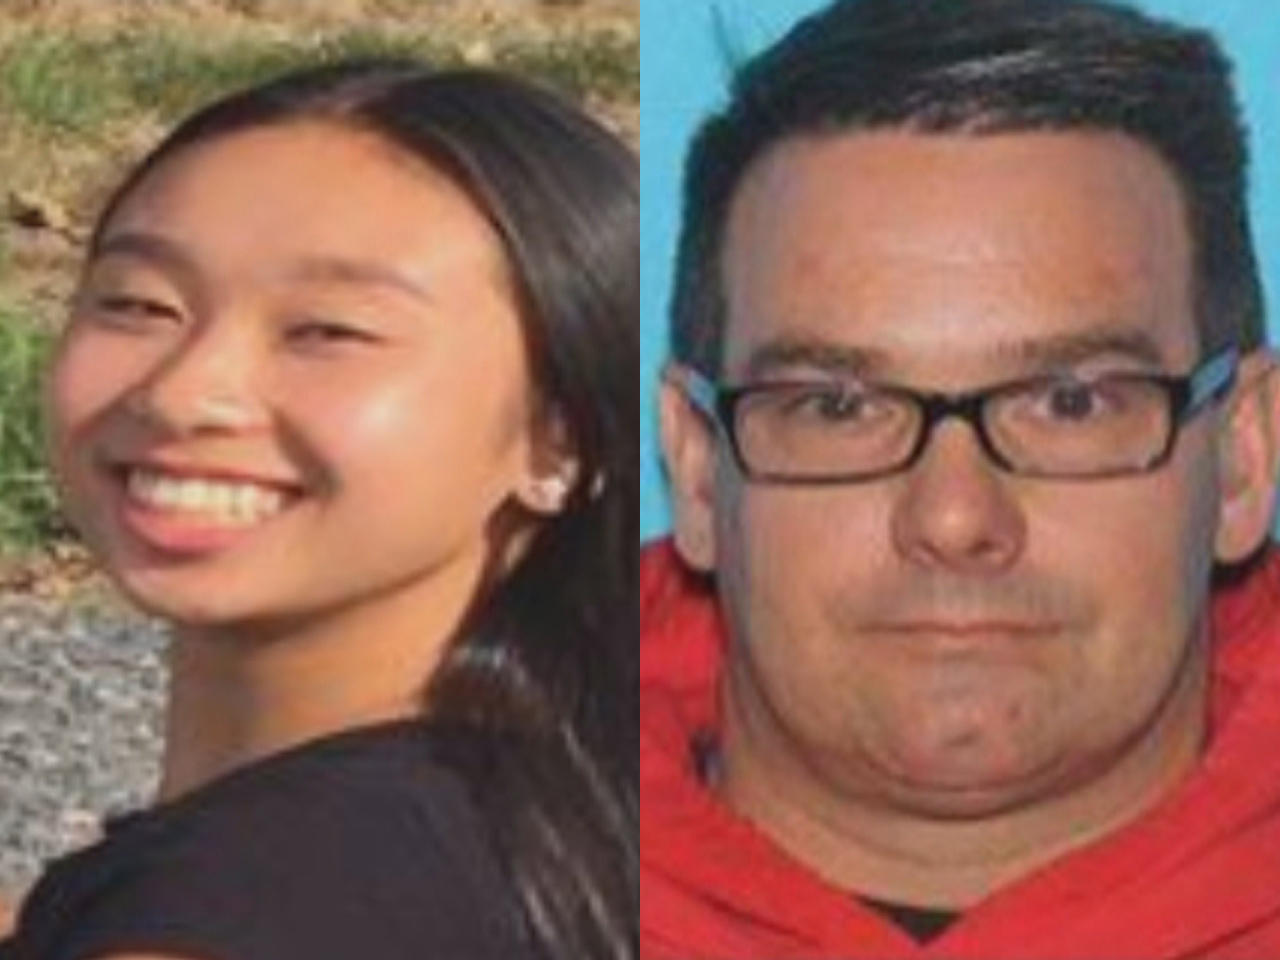 Missing Teen Located In Mexico 45 Year Old Man Arrested Authorities Say